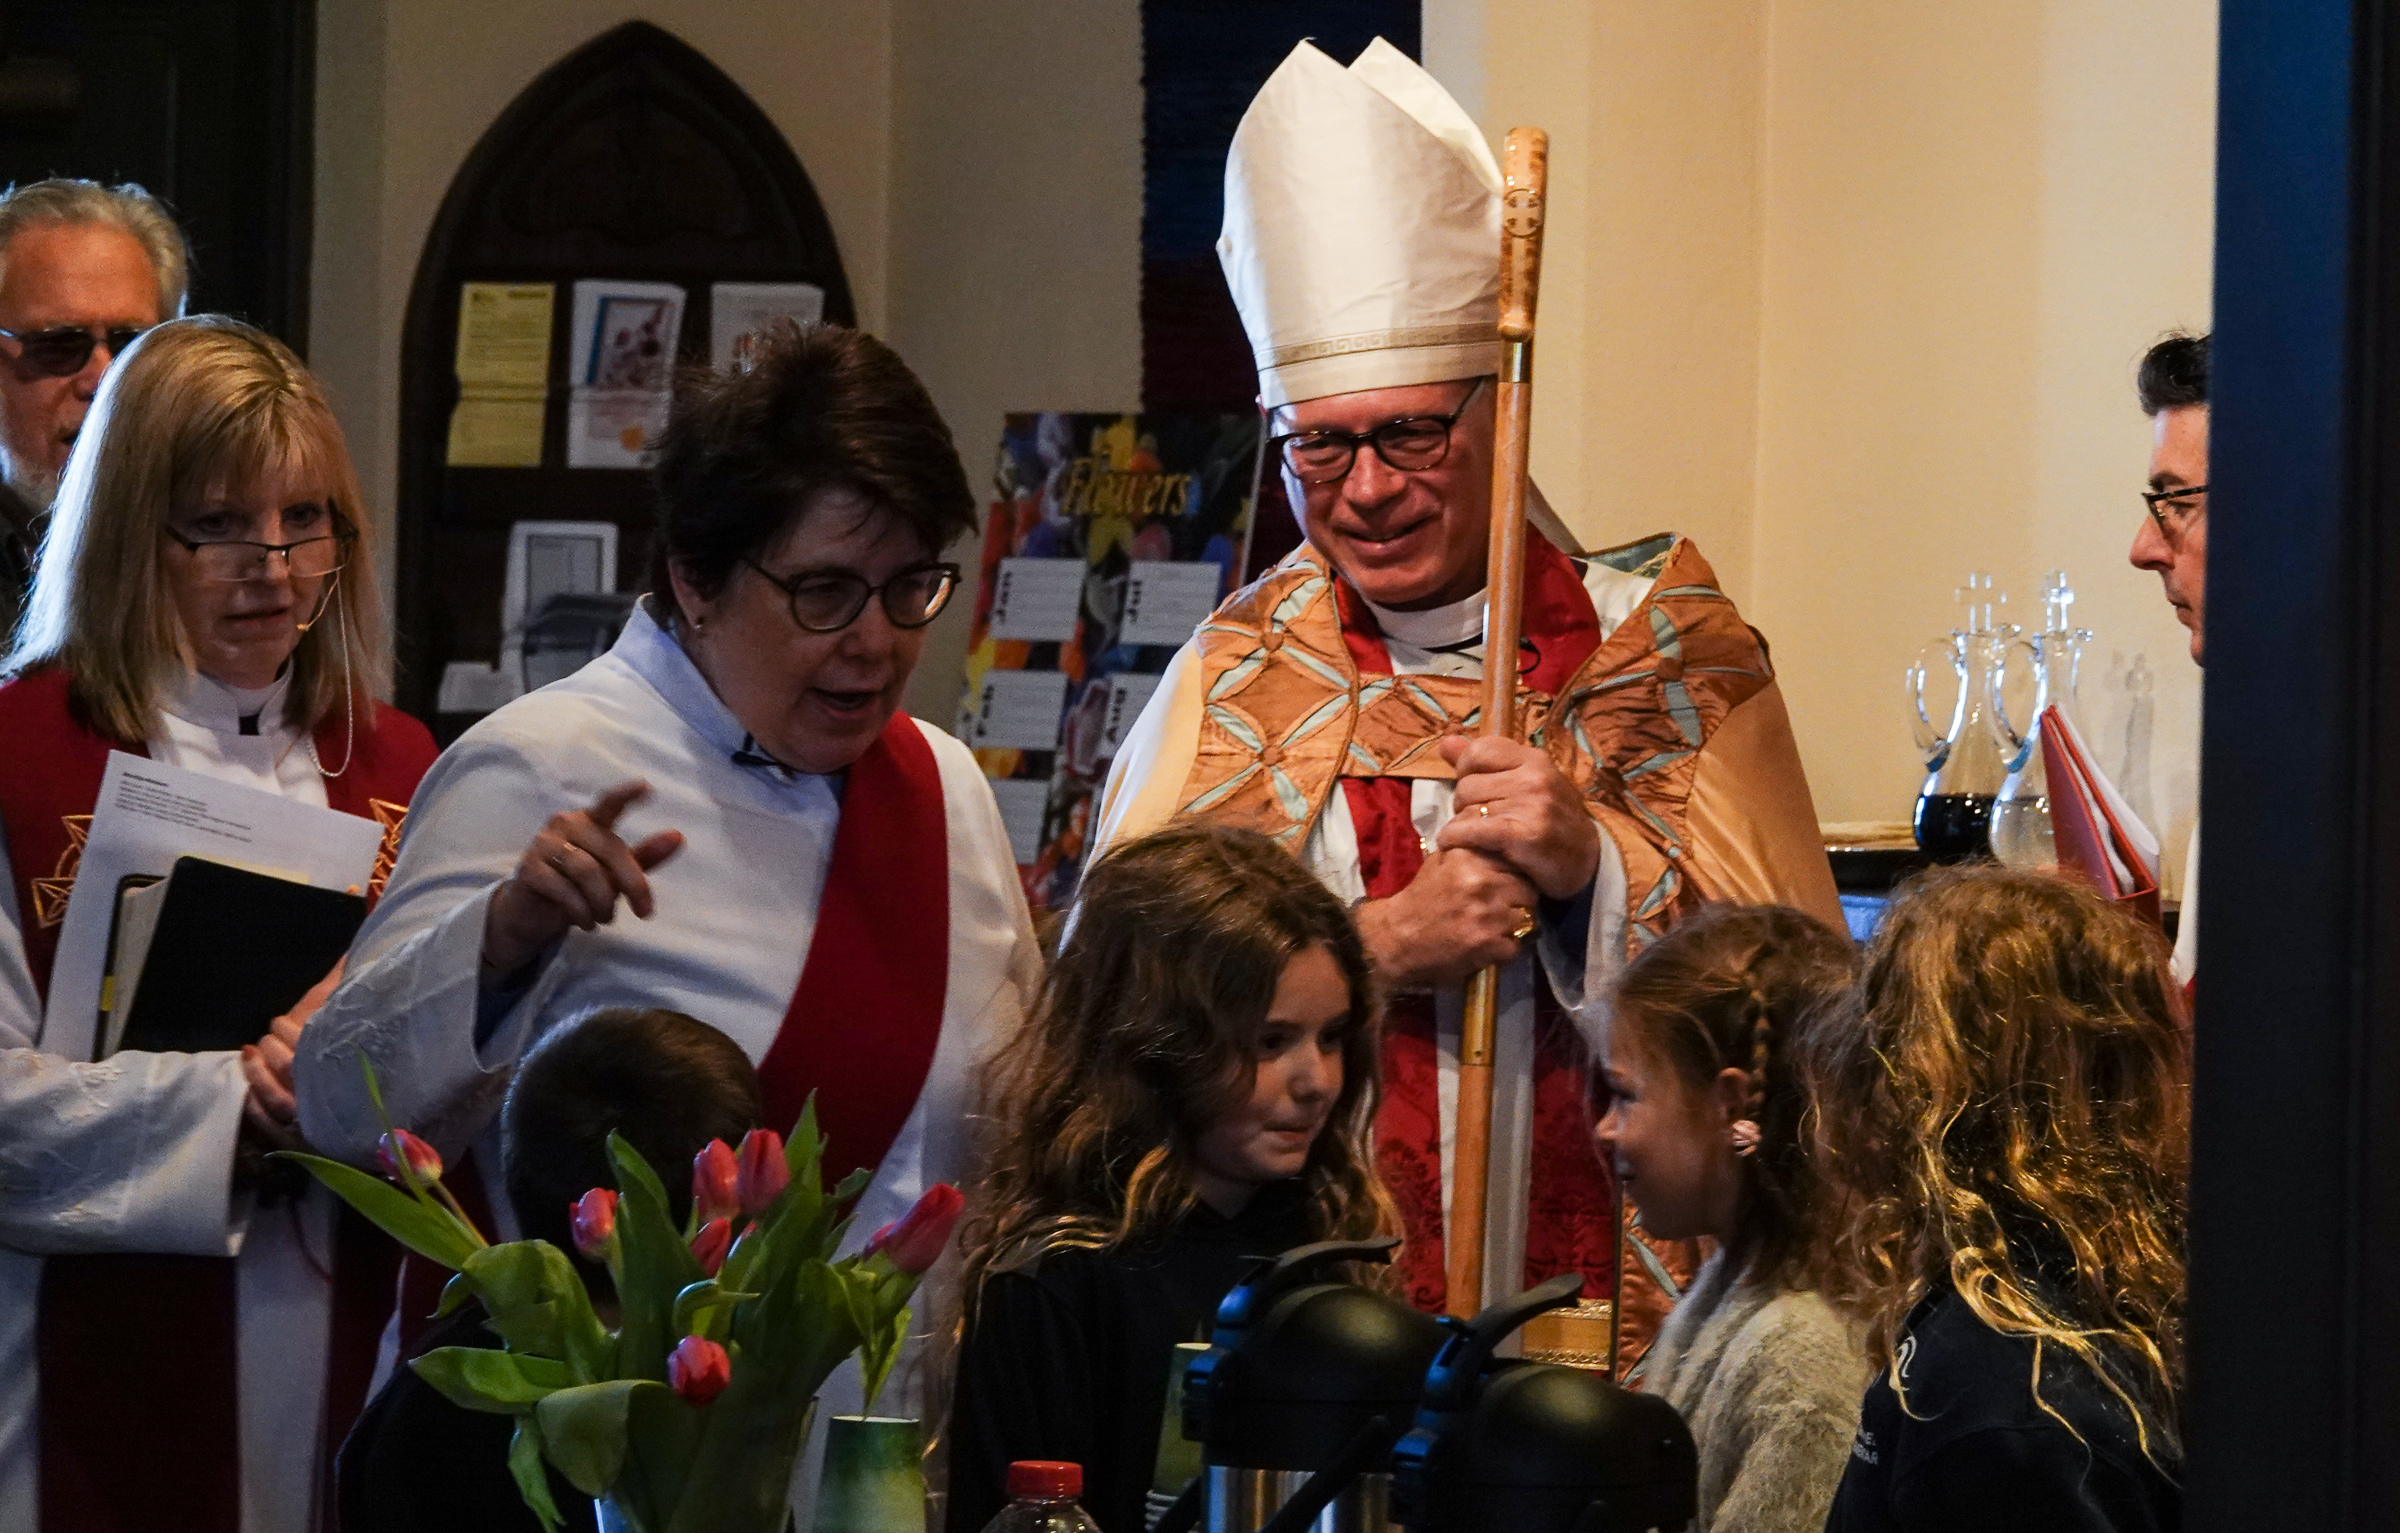 Bishop Marc on one of his visits to Epiphany.